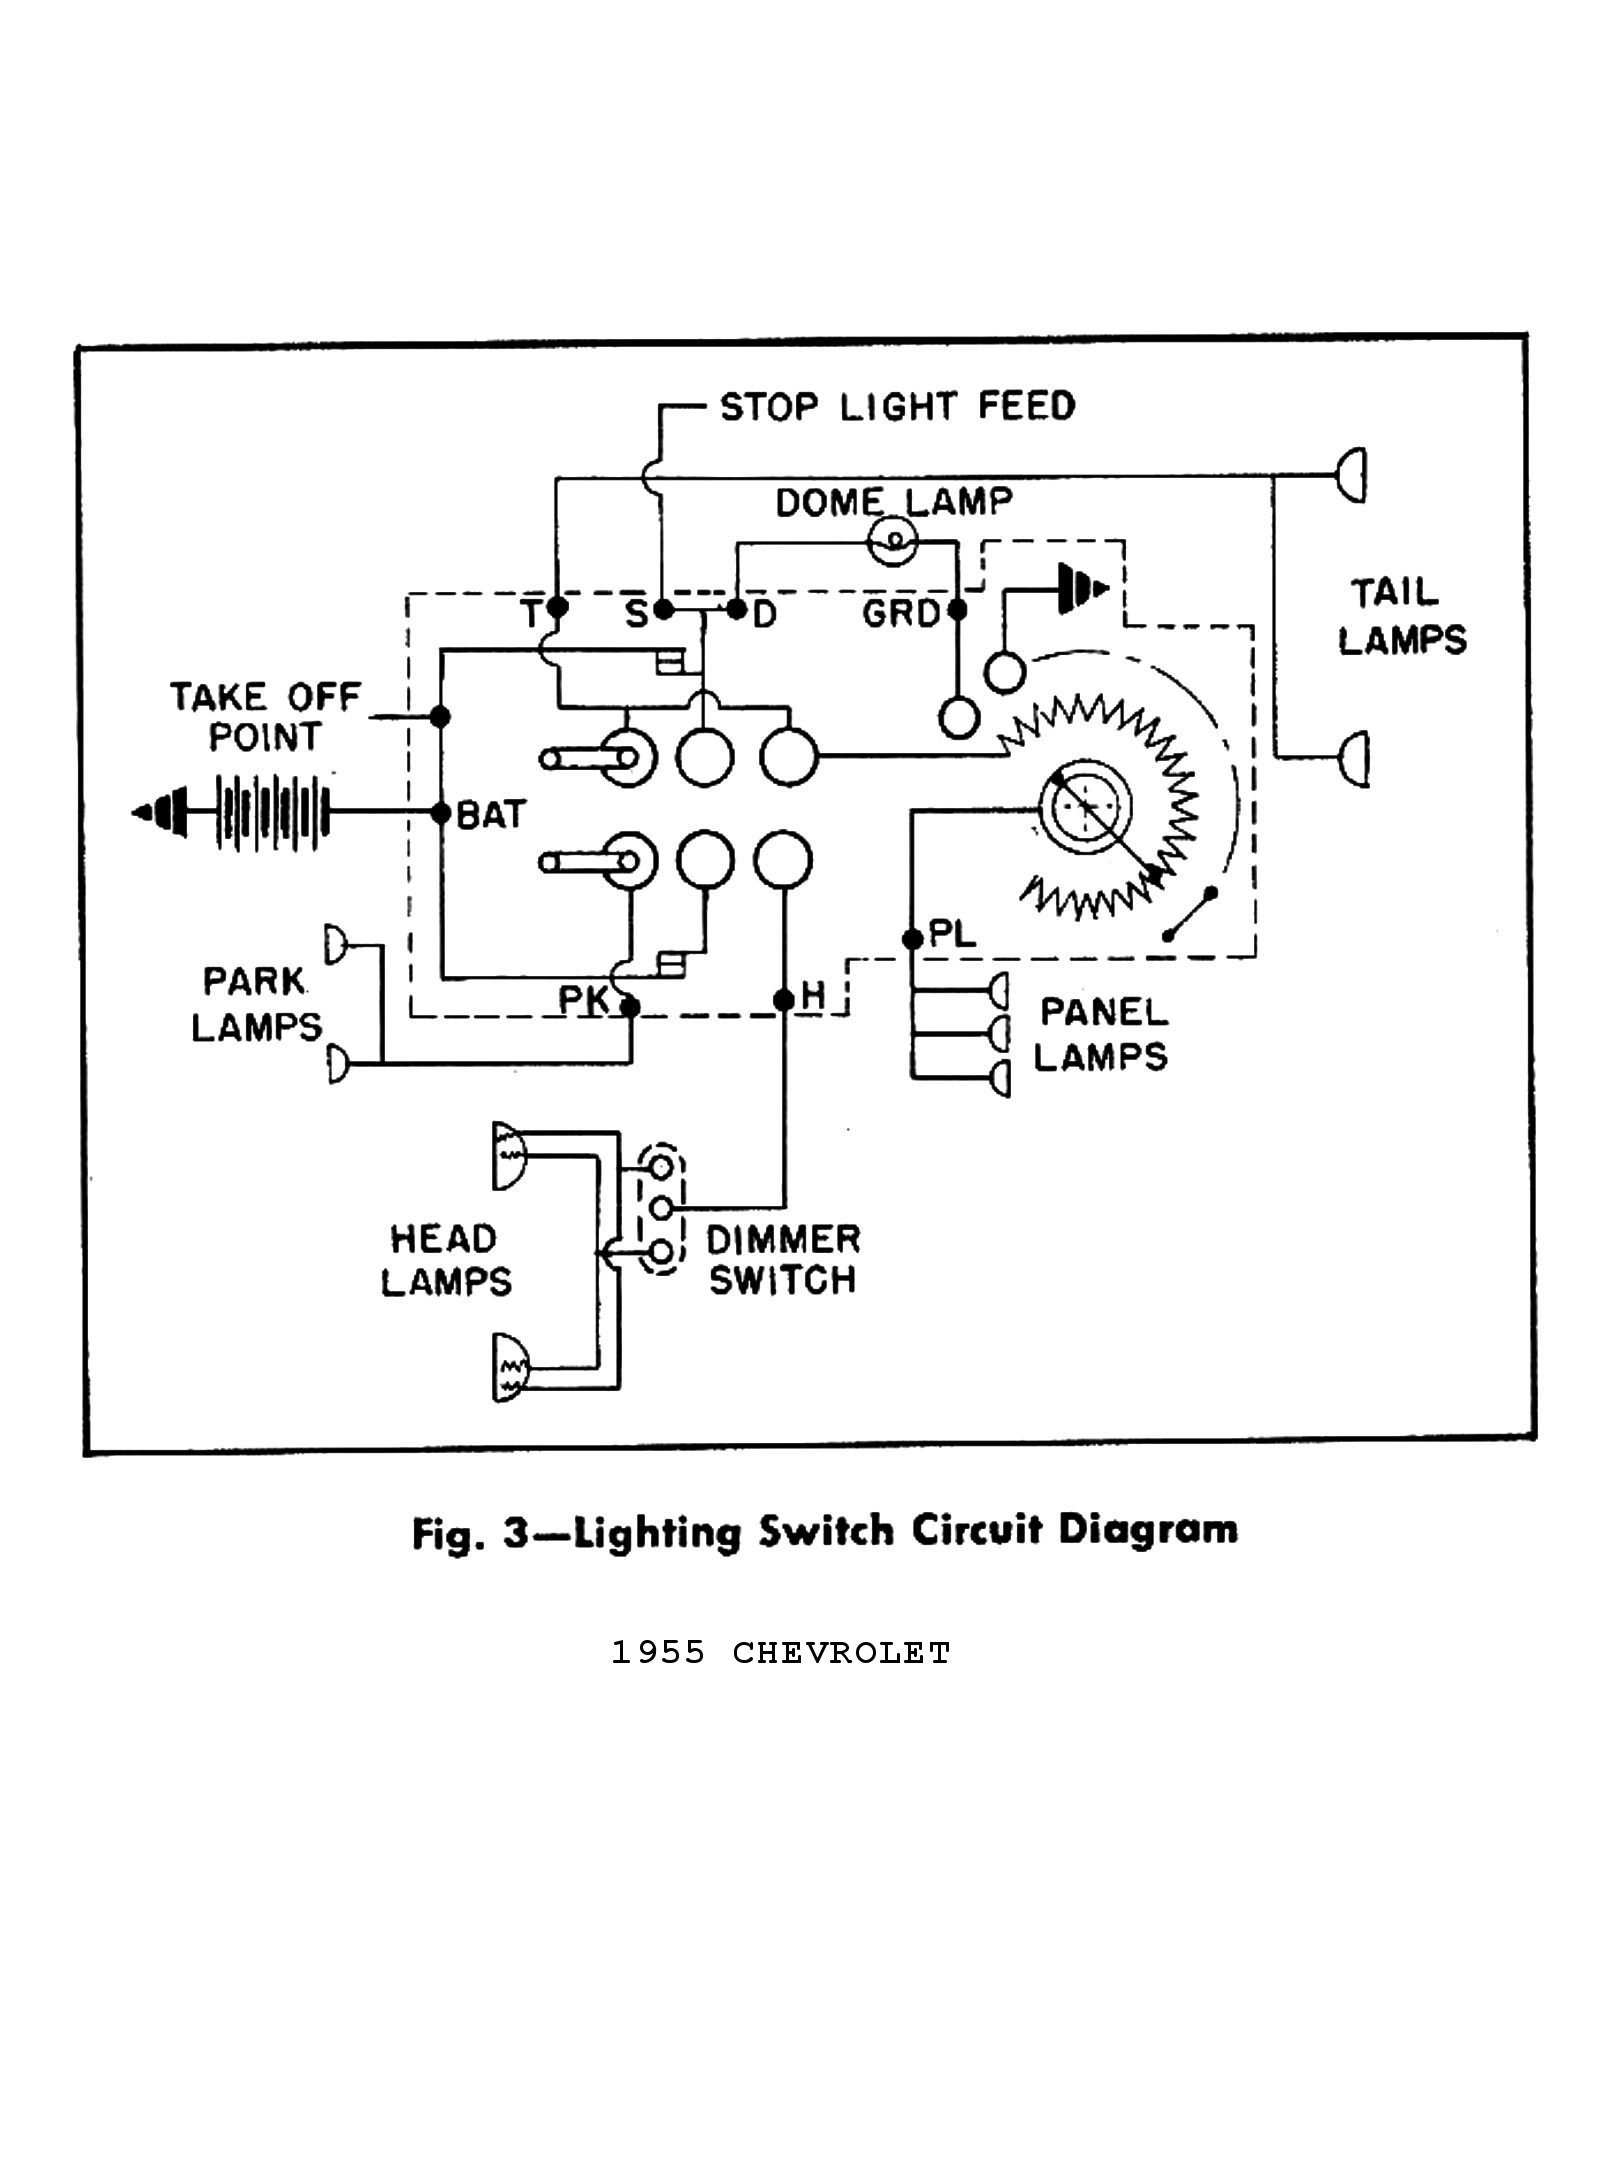 1960 Buick Wiring Diagram Library 1969 Lesabre Ignition 1950 Chevy Truck Data Schema 1953 1959 Pickup